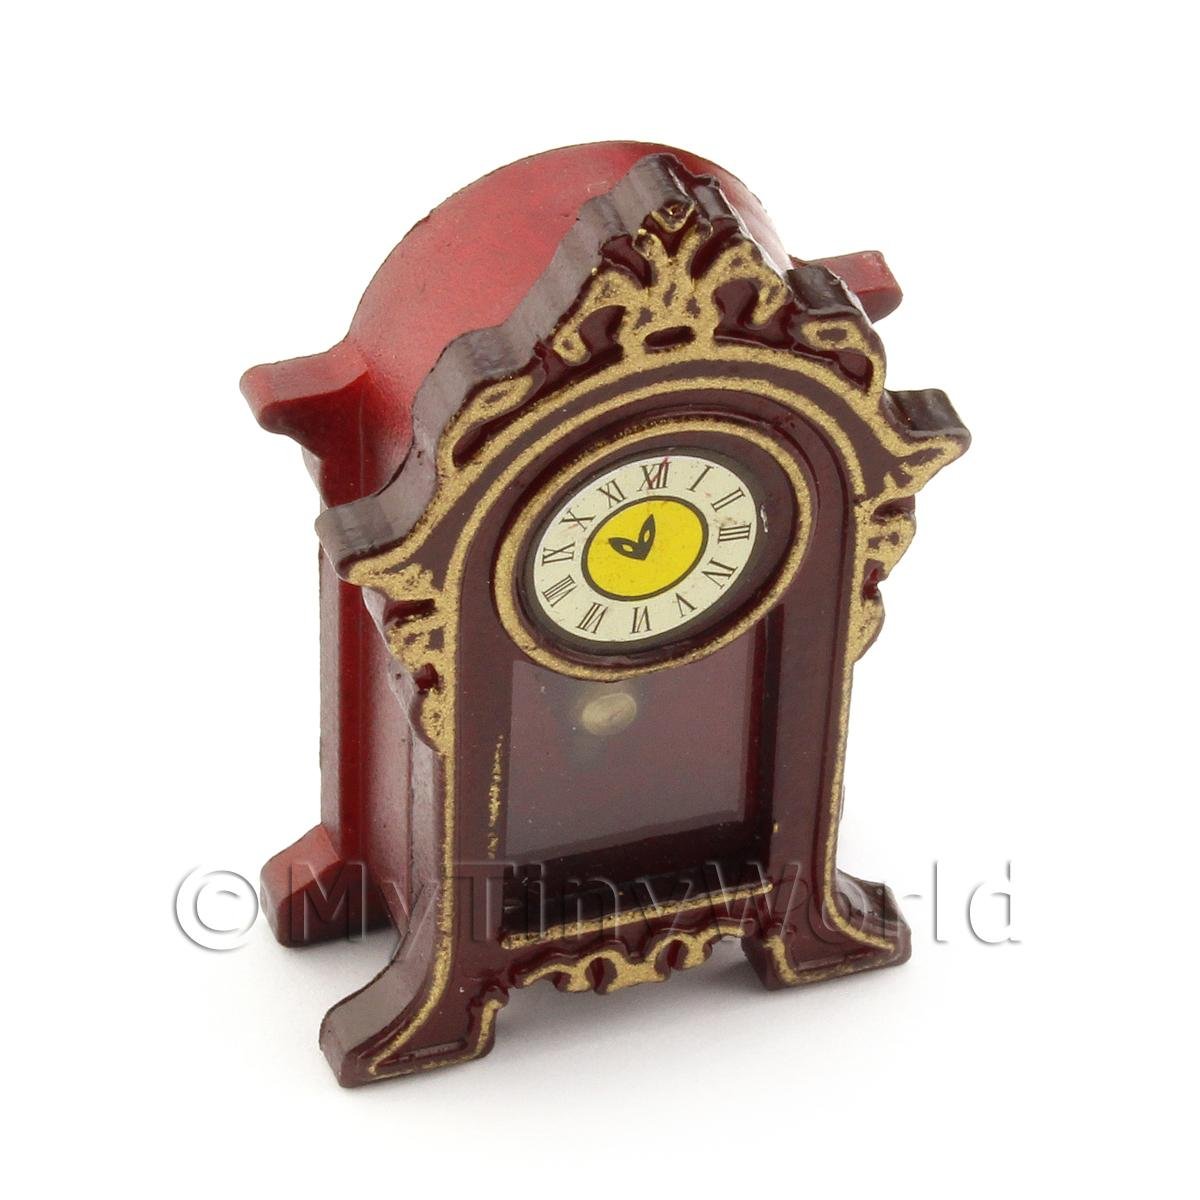 Dolls House Miniature Old Style Brown Mantelpiece Clock